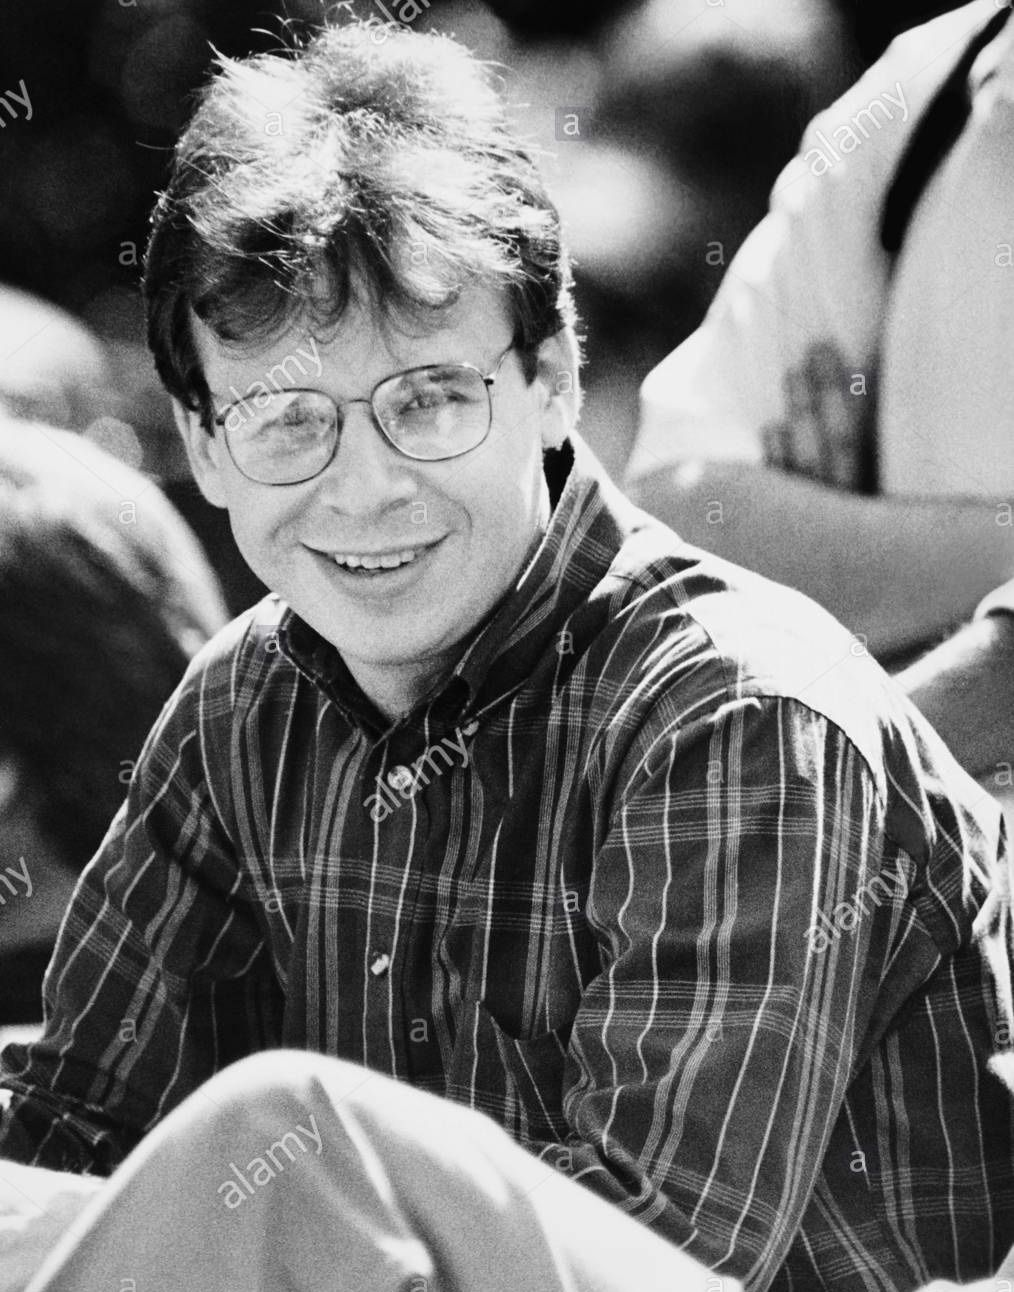 Pin by Shannon ♡ on Rick Moranis (With images) Rick